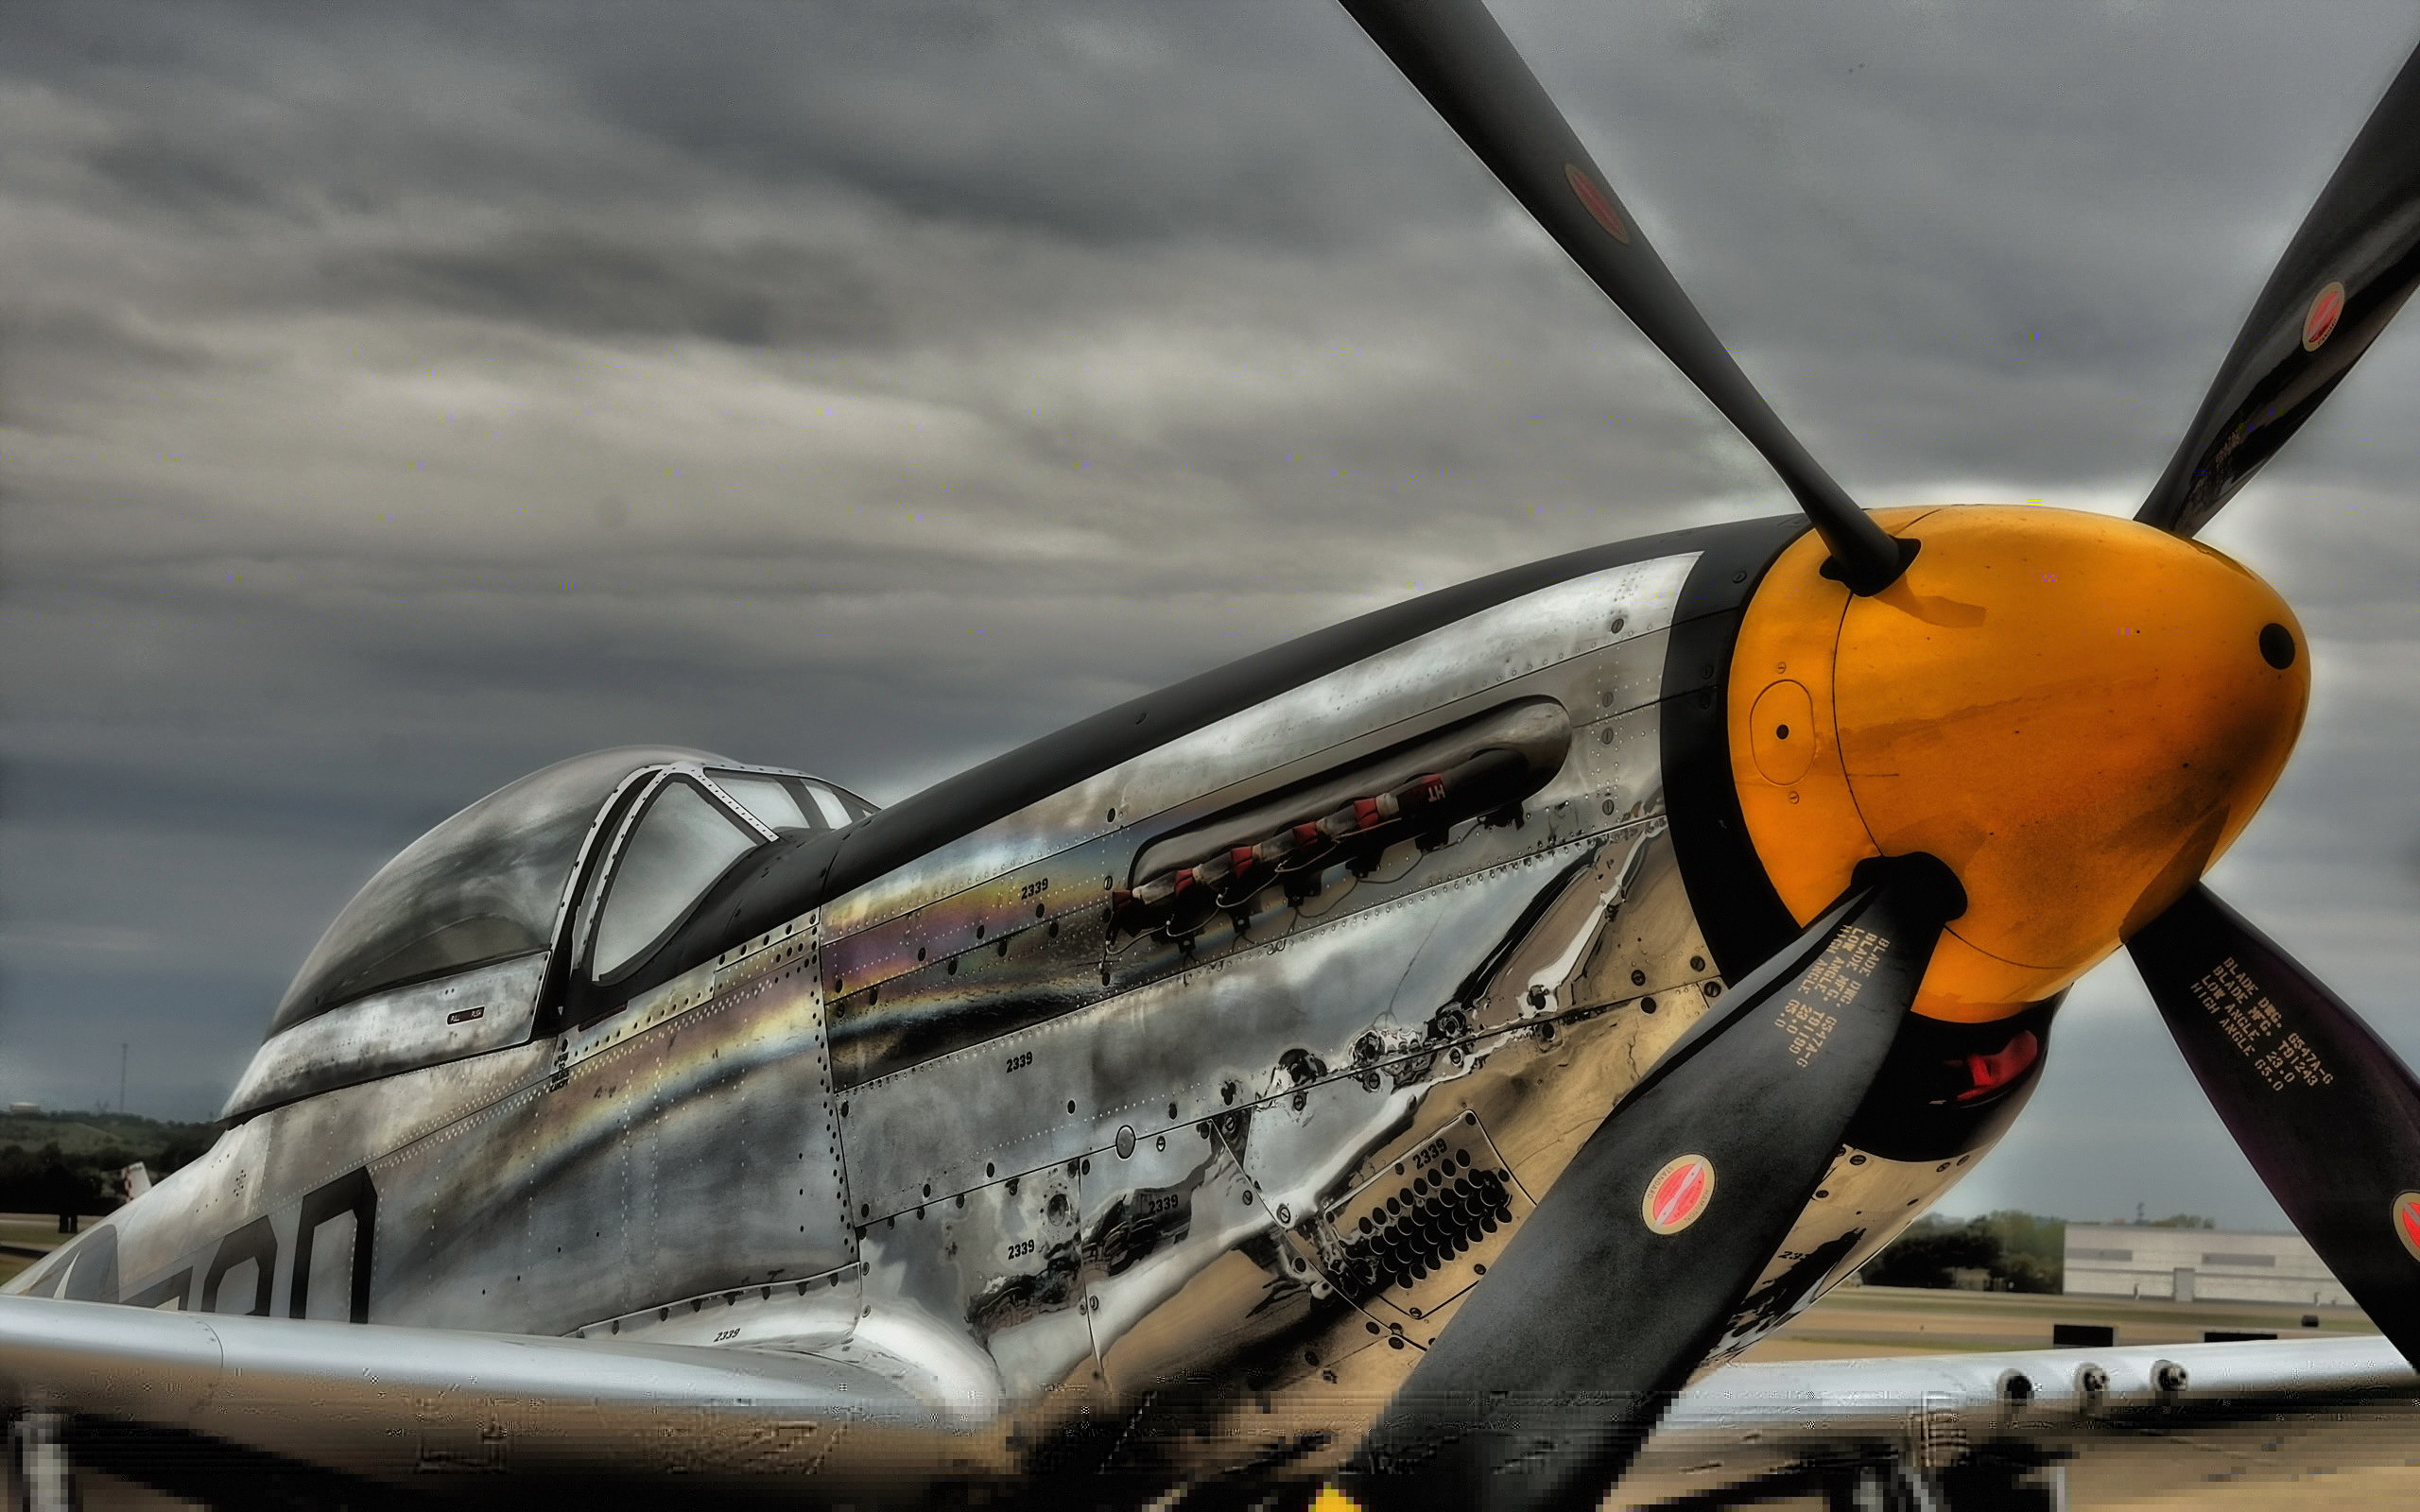 Free Download Wallpaper P51 Mustang Airplane Aviation Wallpapers